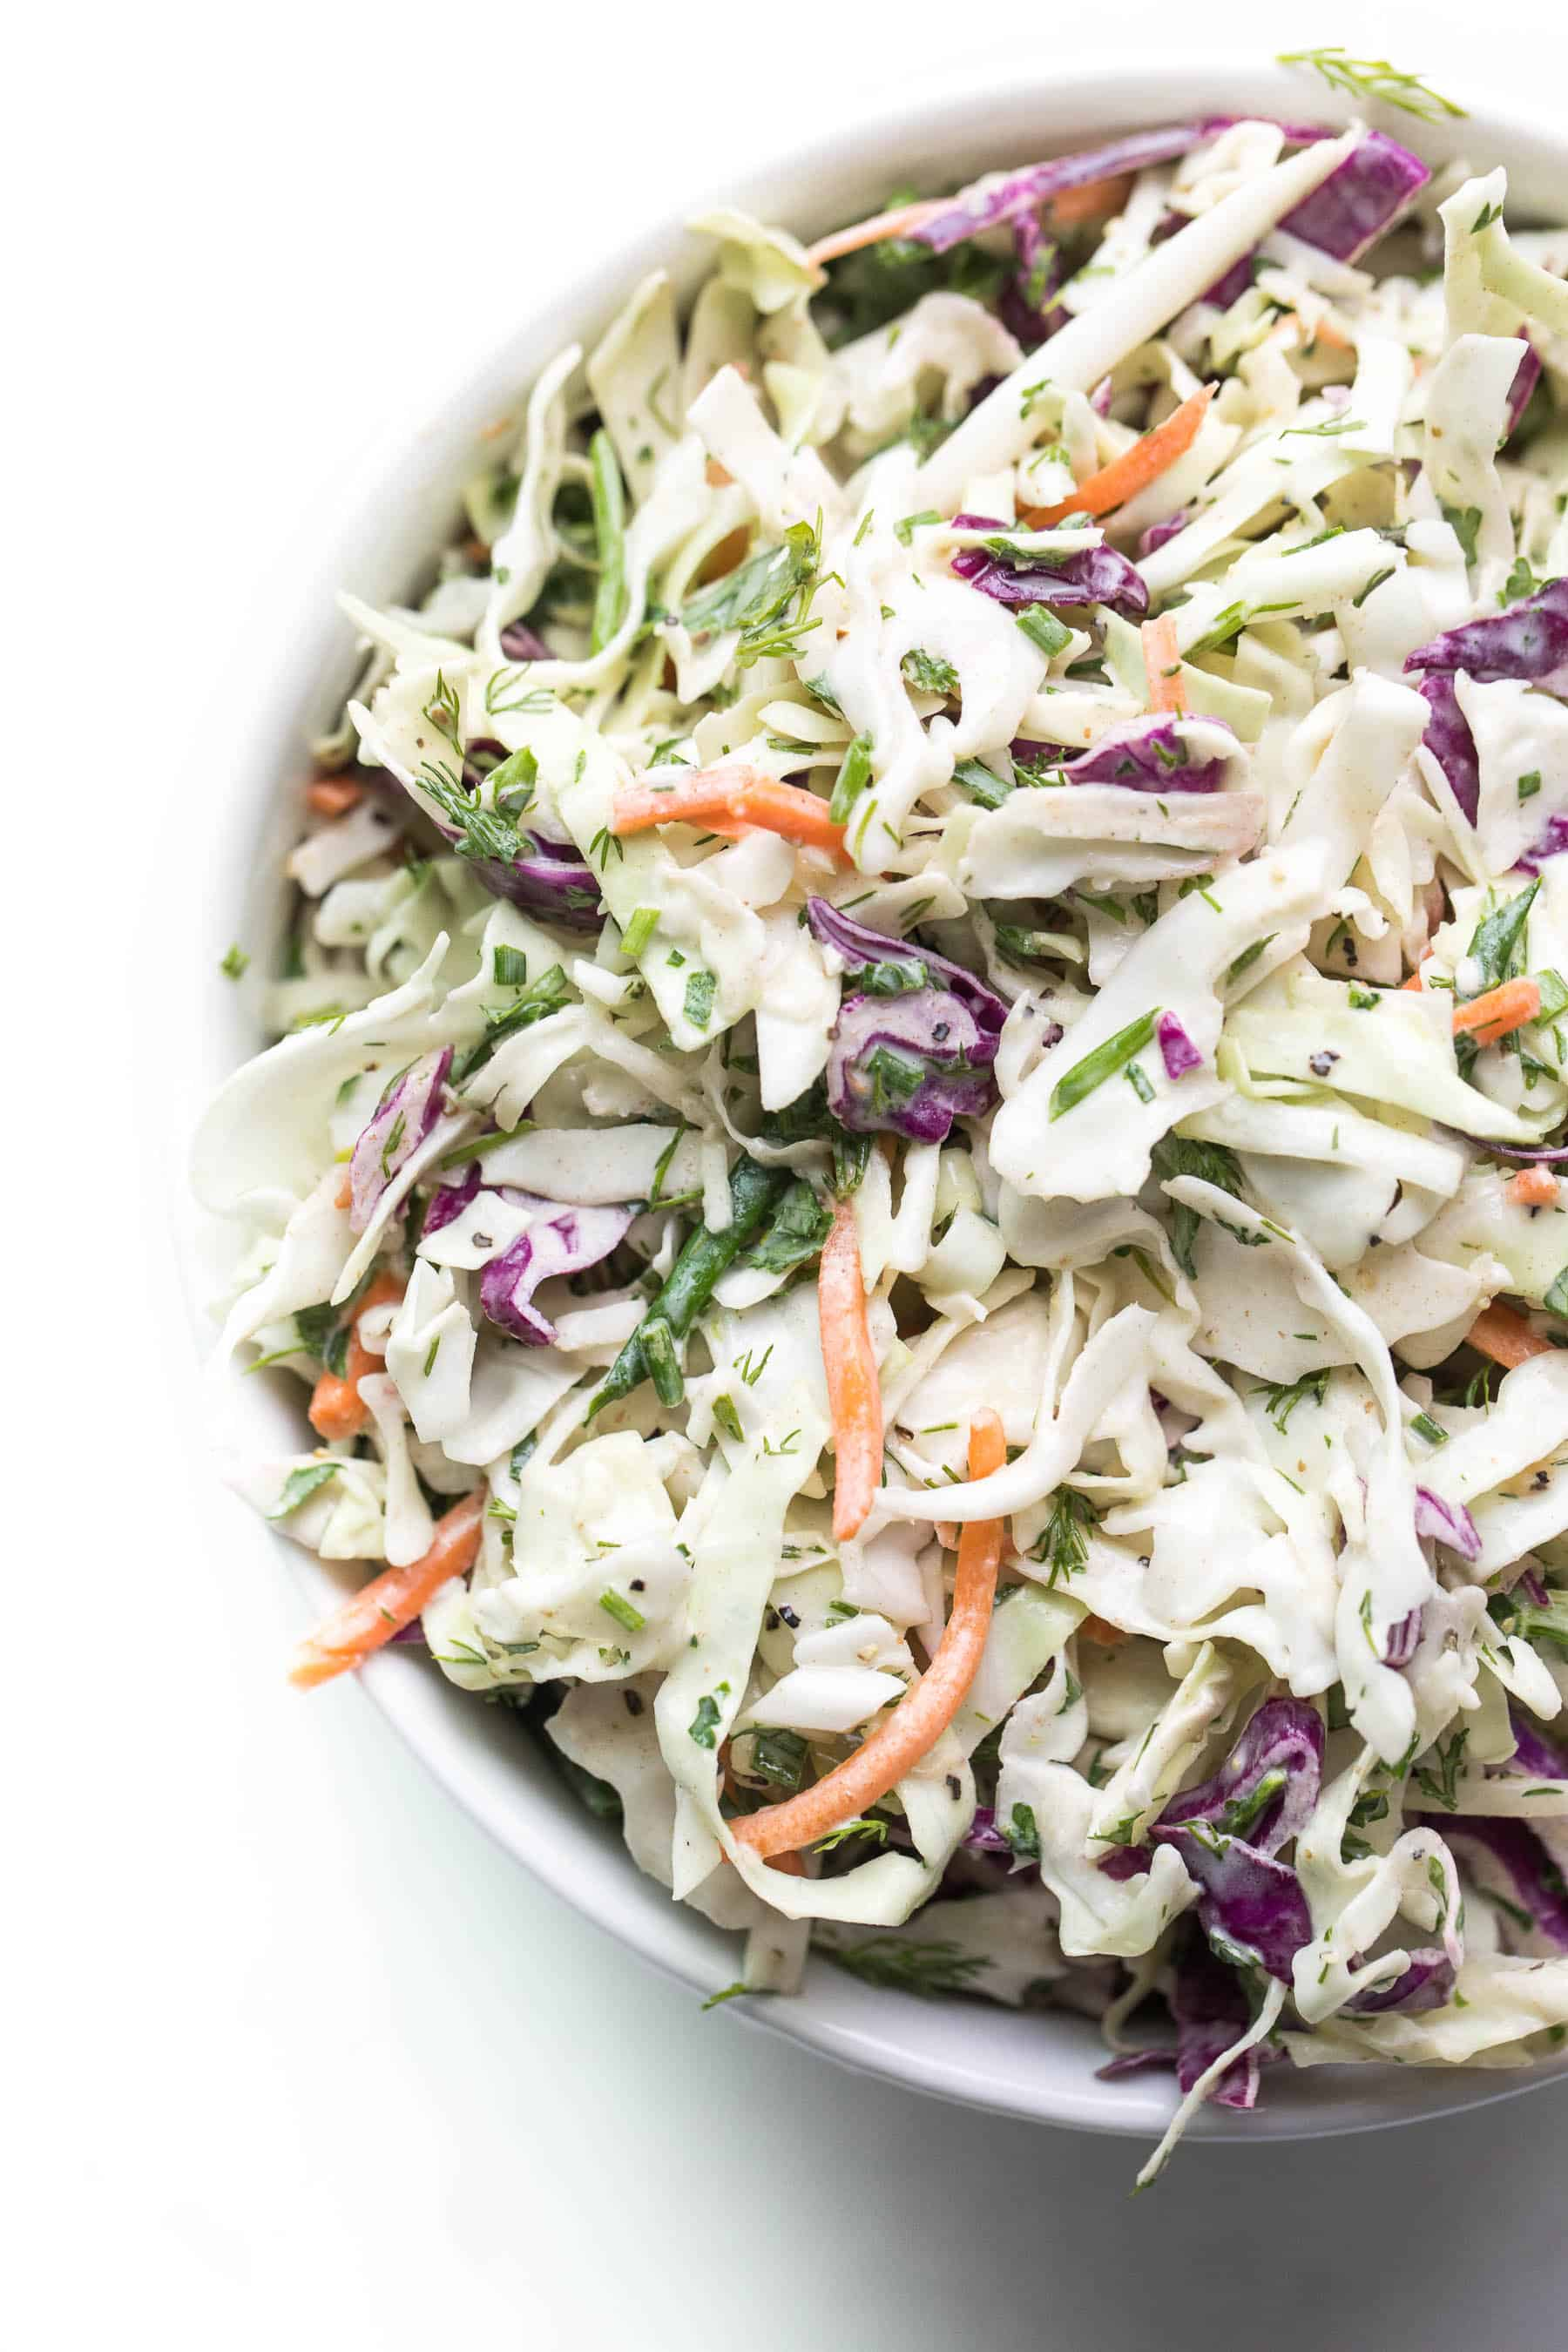 Herby lemon coleslaw in a white bowl